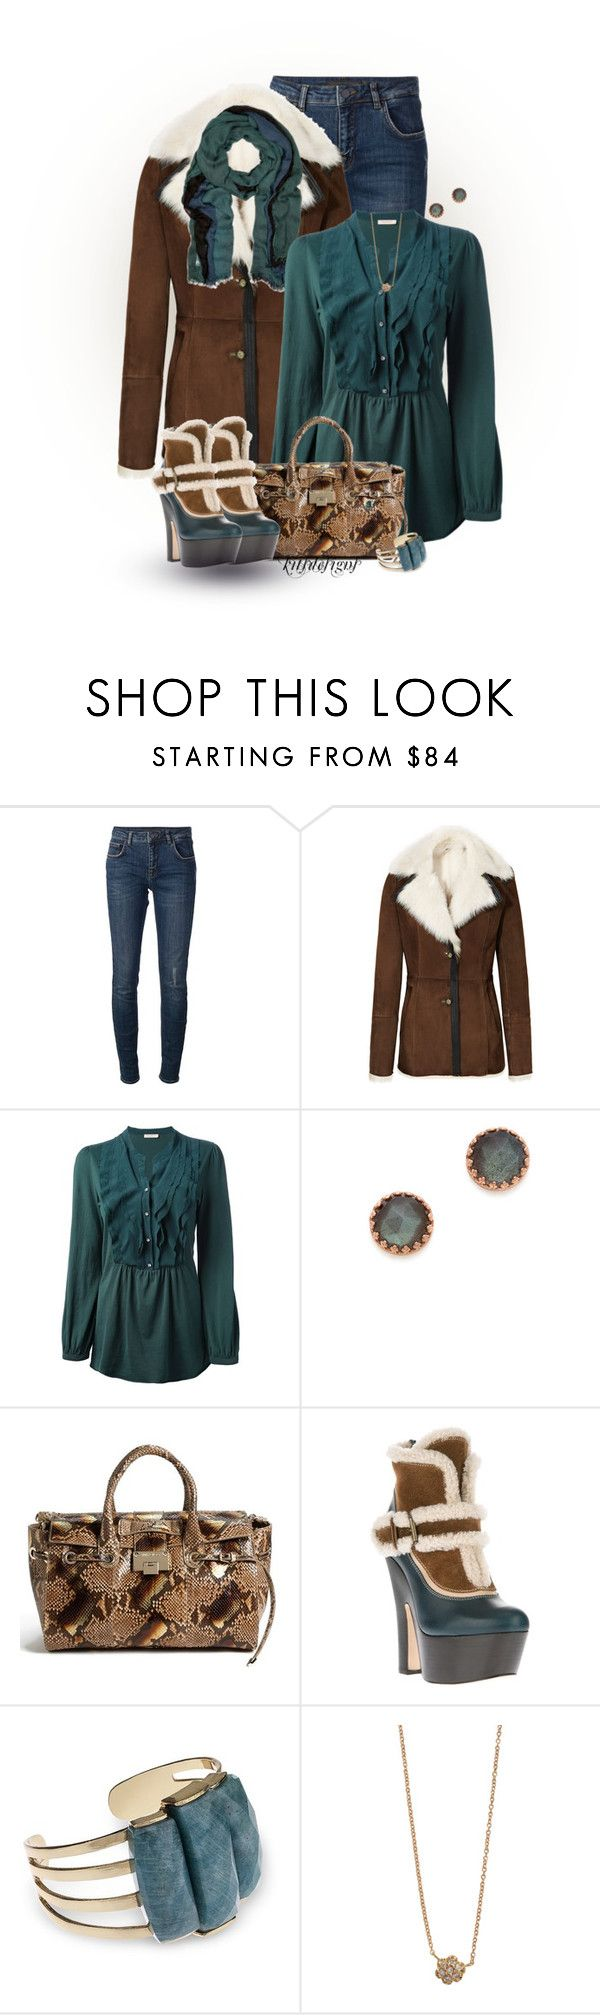 """""""Teal & Brown"""" by kitsdesigns ❤ liked on Polyvore featuring Victoria Beckham, Reiss, Erika Cavallini Semi-Couture, Heather Hawkins, Jimmy Choo, Dsquared2, Lola Rose and Ginette NY"""